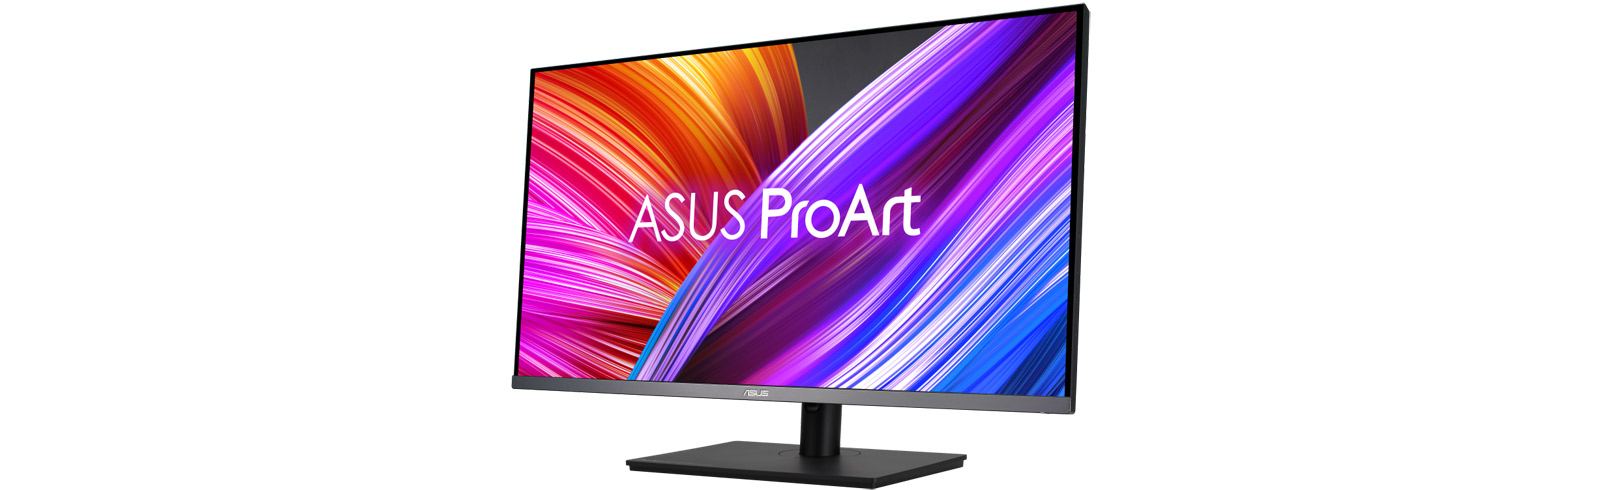 The Asus PA32UCR ProArt Display with a Mini LED backlight and DIsplayHDR 1000 is presented